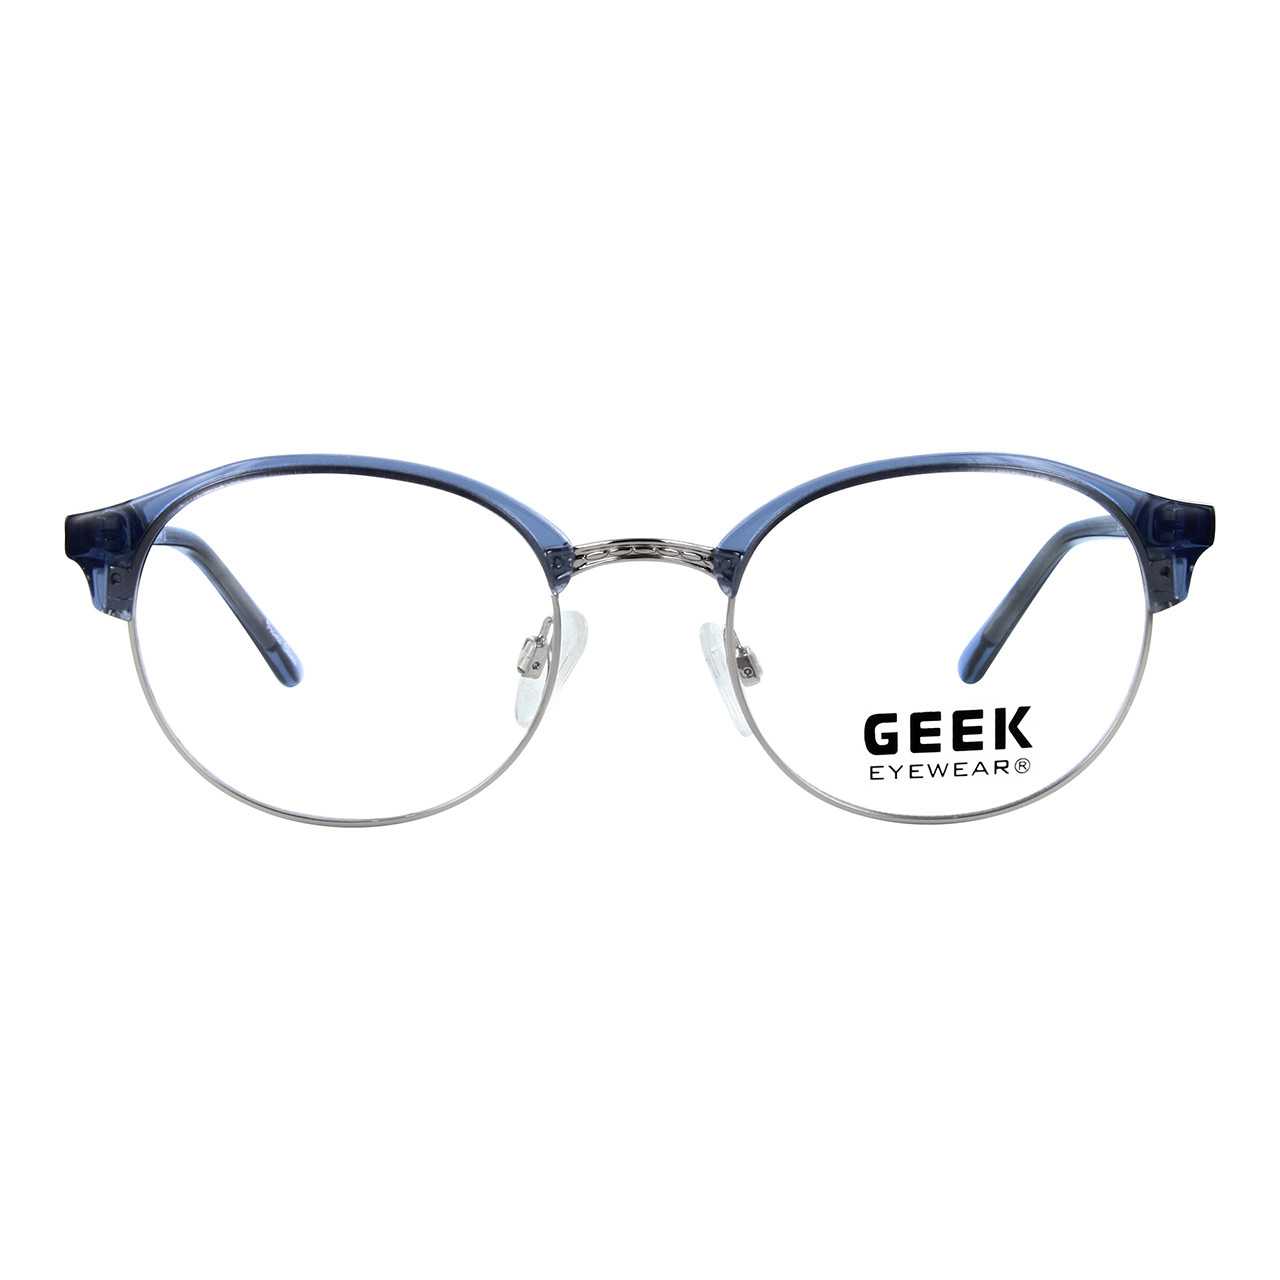 GEEK Eyewear GEEK HORIZON in SEIGE